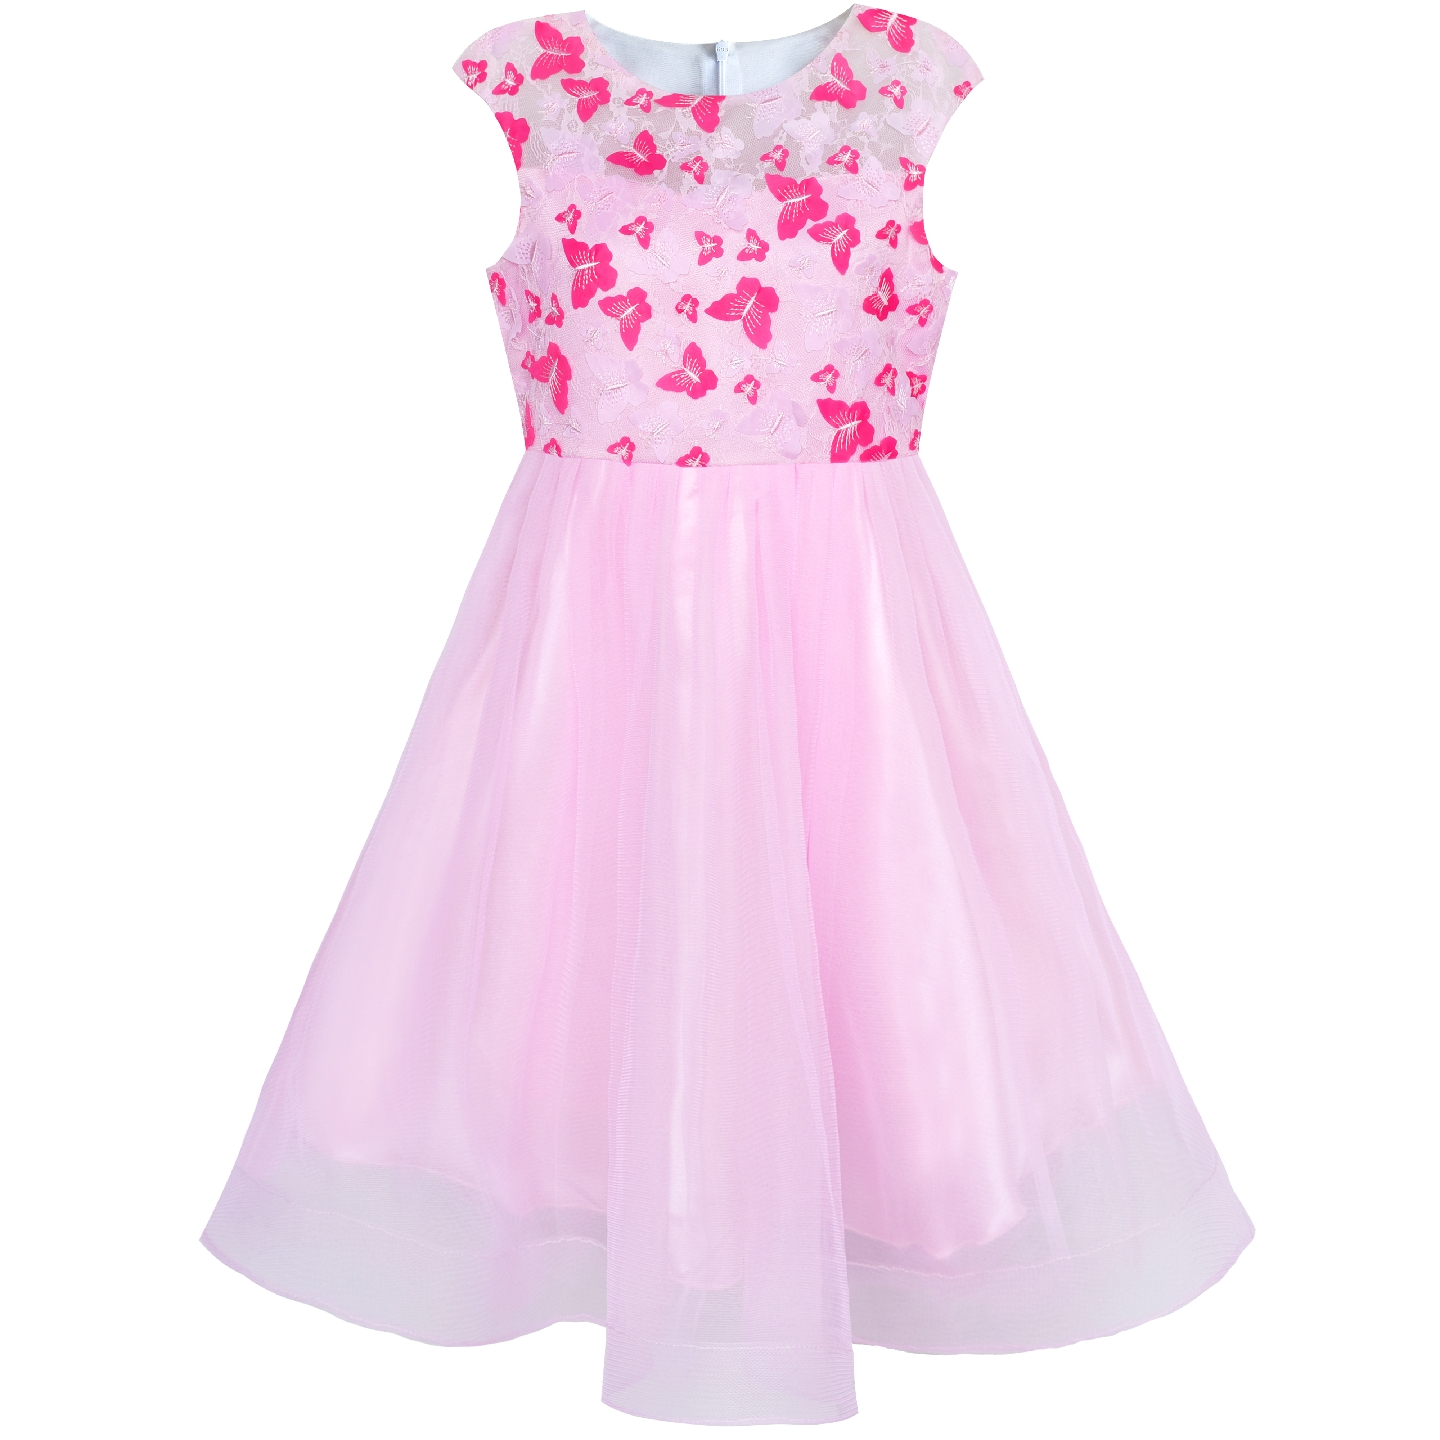 Flower Girl Dress Butterfly Pink Bridal Veil Wedding Bridesmaid 2019 Summer Princess Party Dresses Kids Clothes Pageant Sundress пылесос